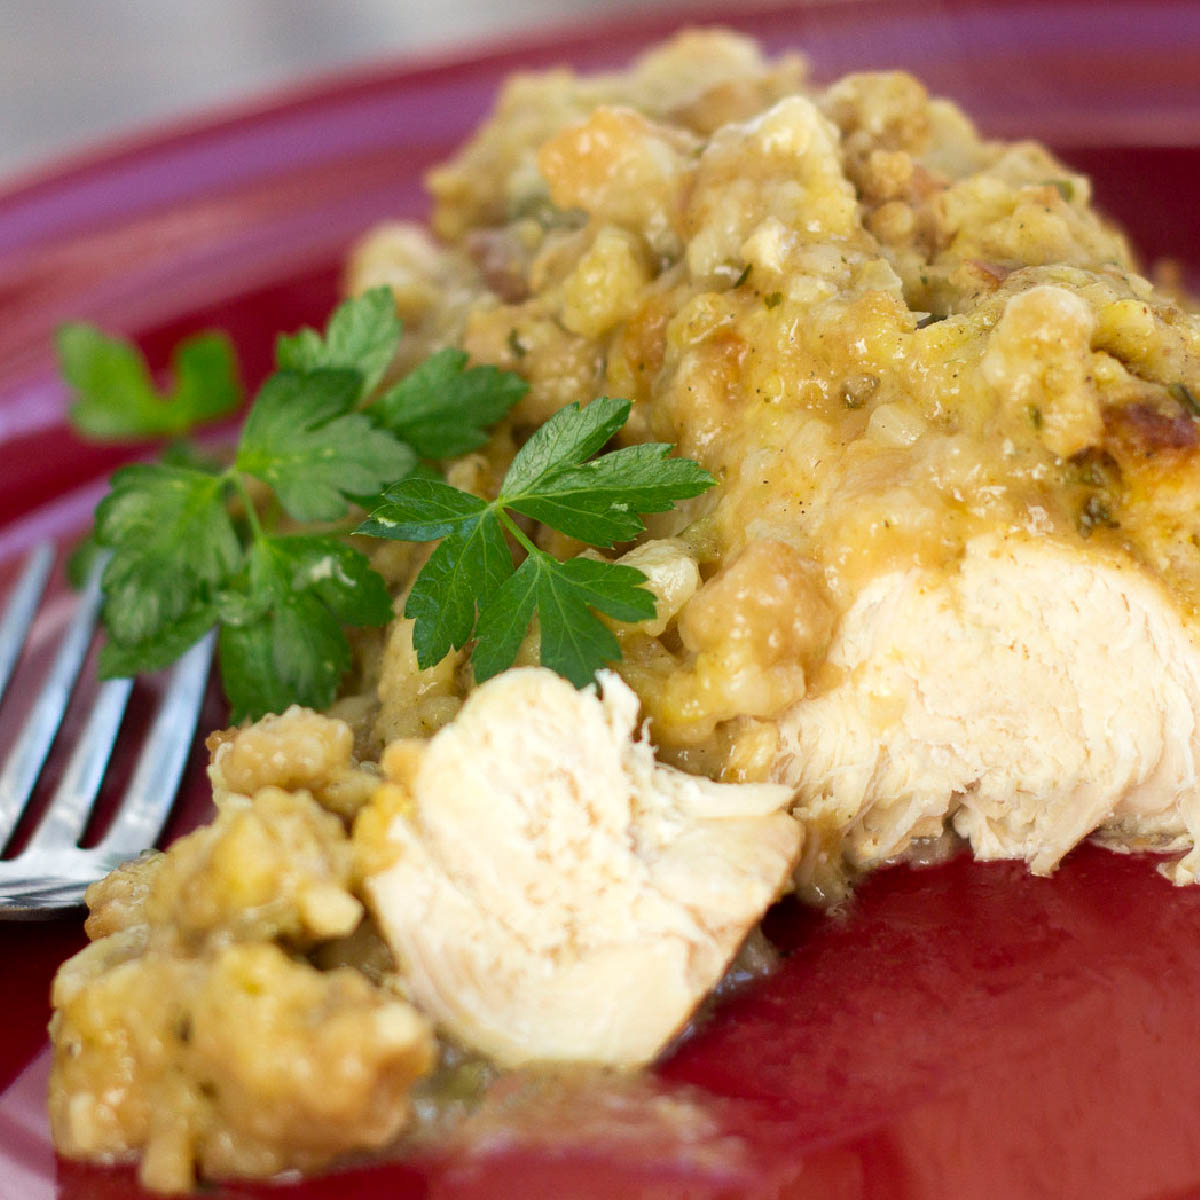 A chicken breast topped with gravy and stuffing on a plate with a fork.